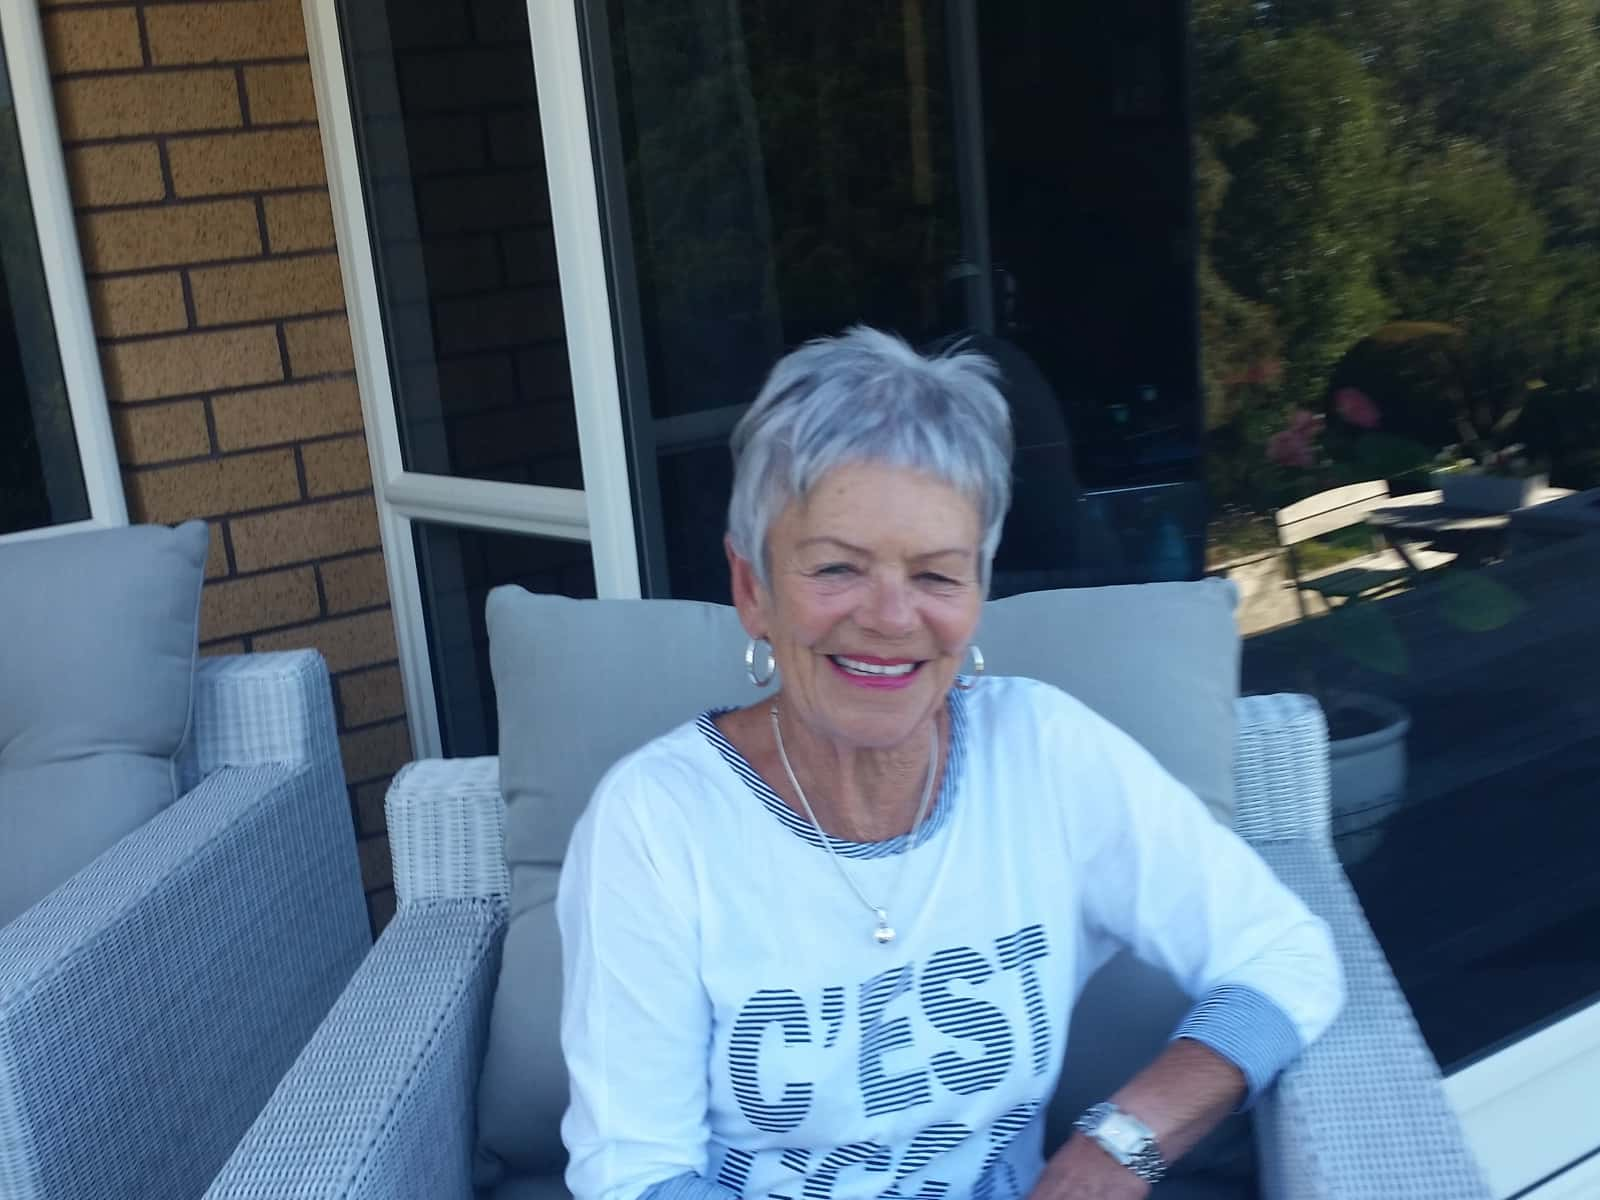 Jean from New Plymouth, New Zealand